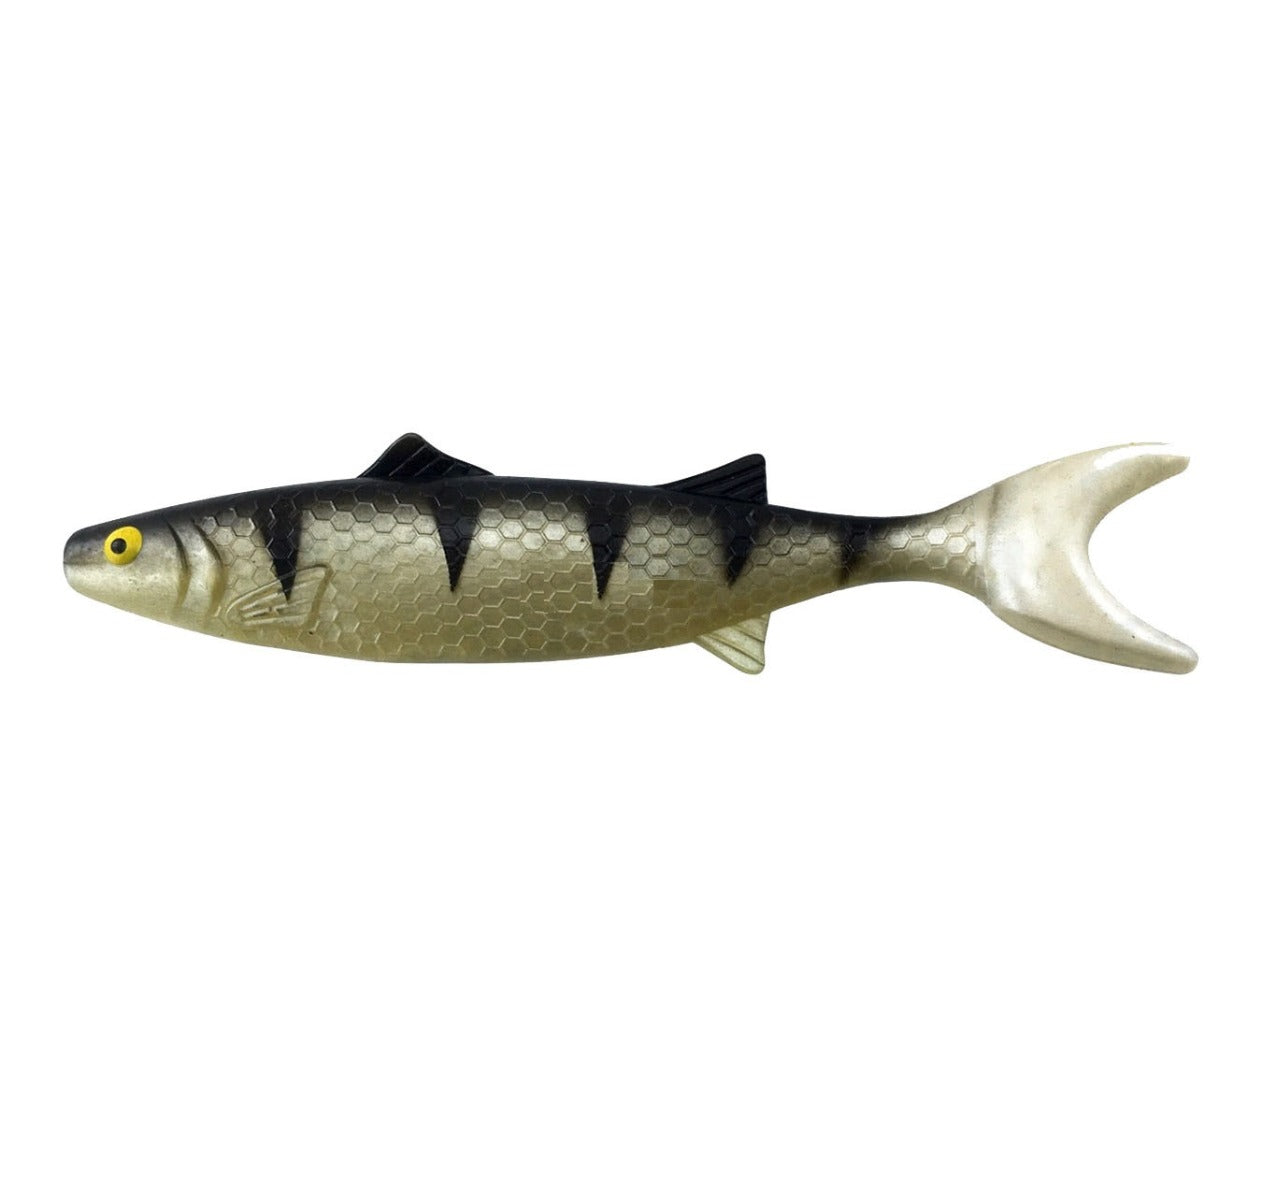 Fuze Seaducer Mullet 150mm Soft Plastic Lure